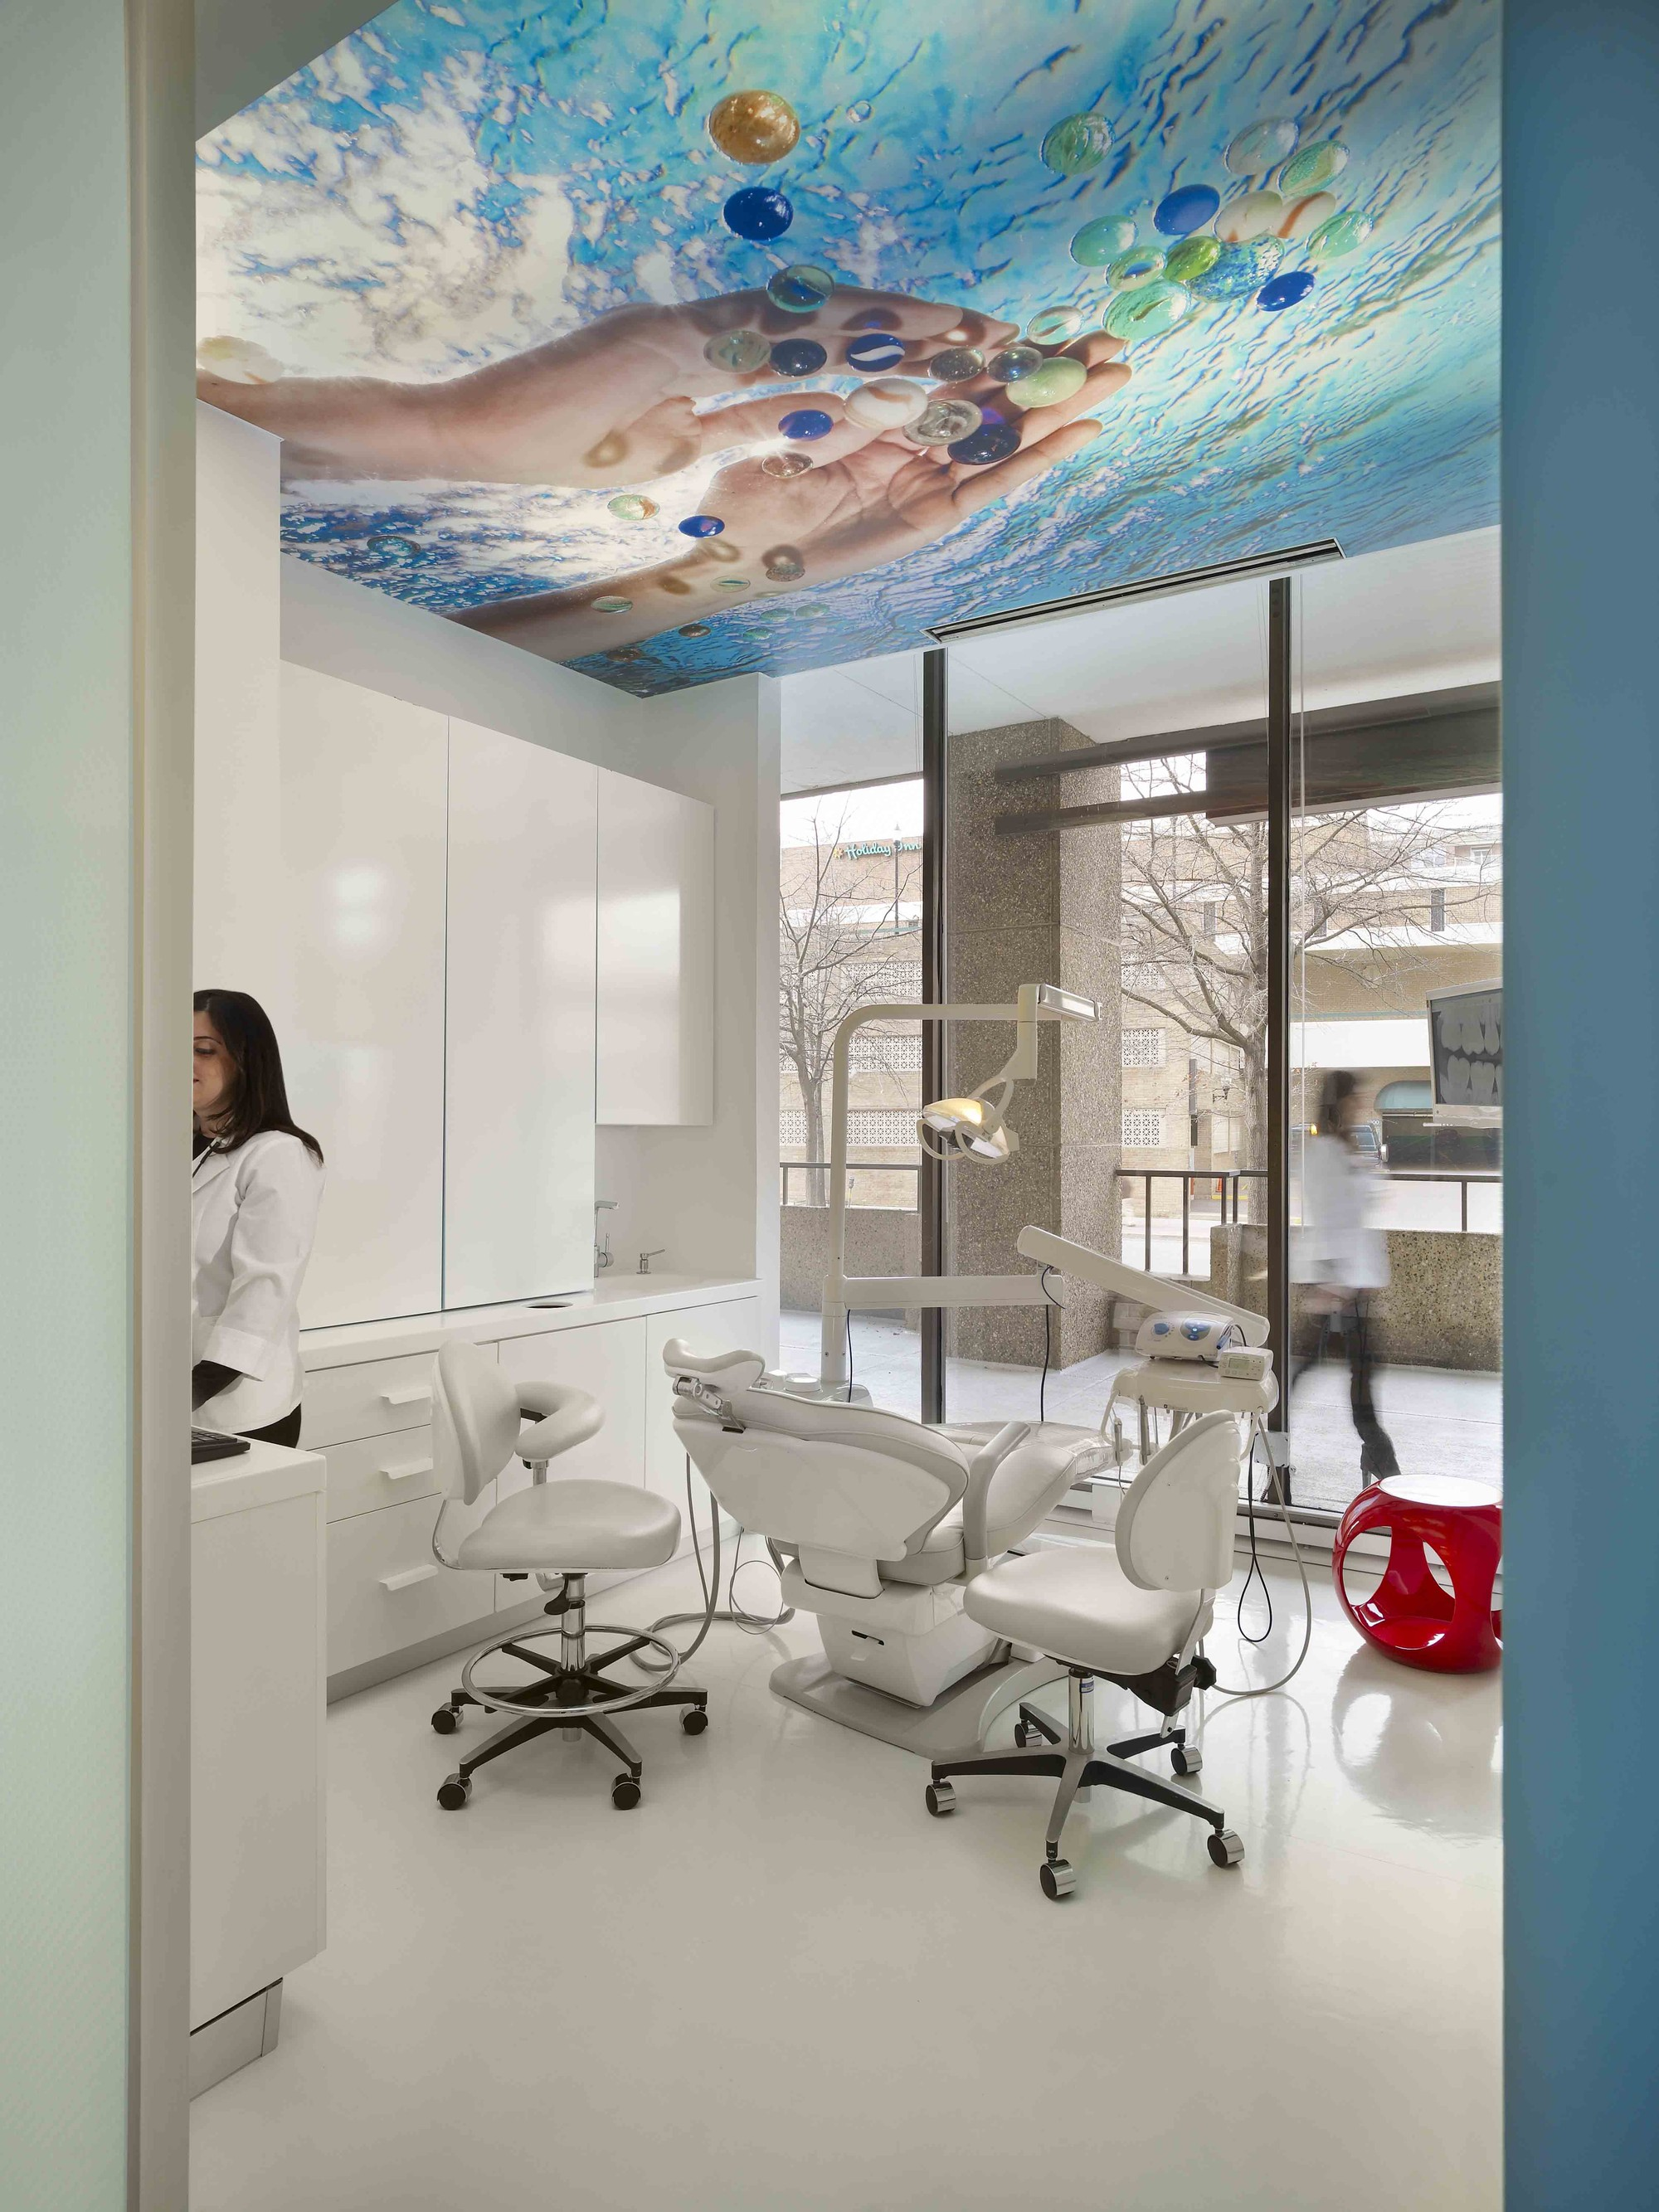 Gallery of smile designer dental office interiors for Dental office interior design